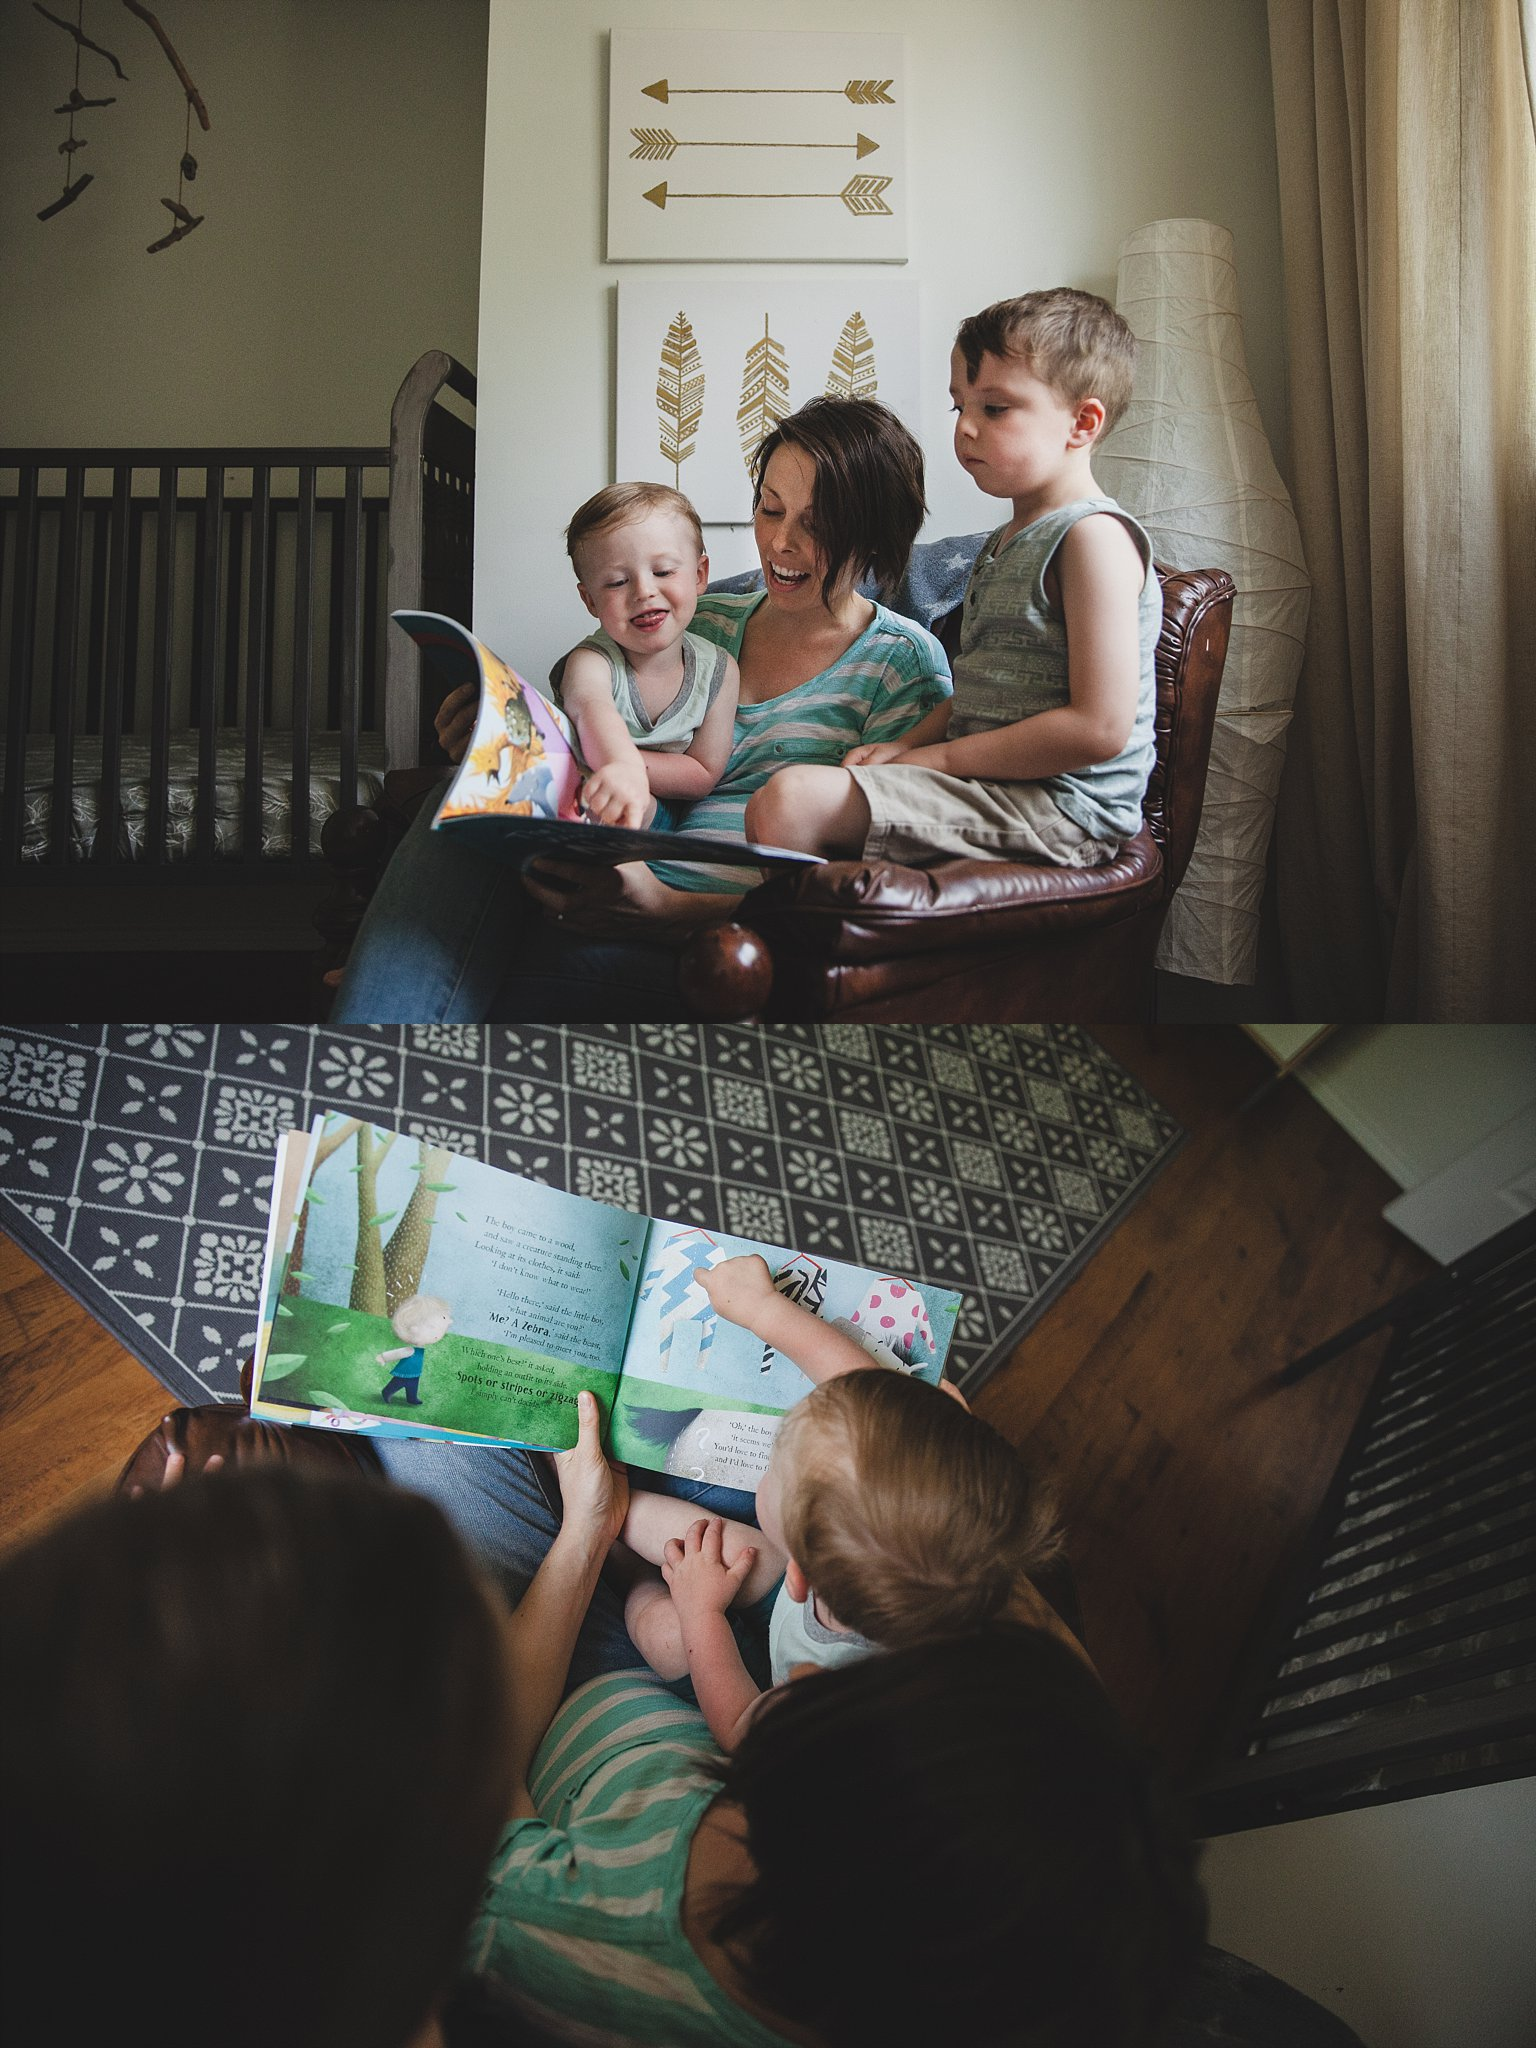 Reading a story in the baby nursery. Photographed by Rachael Little Photography in Woodstock, Ontario.